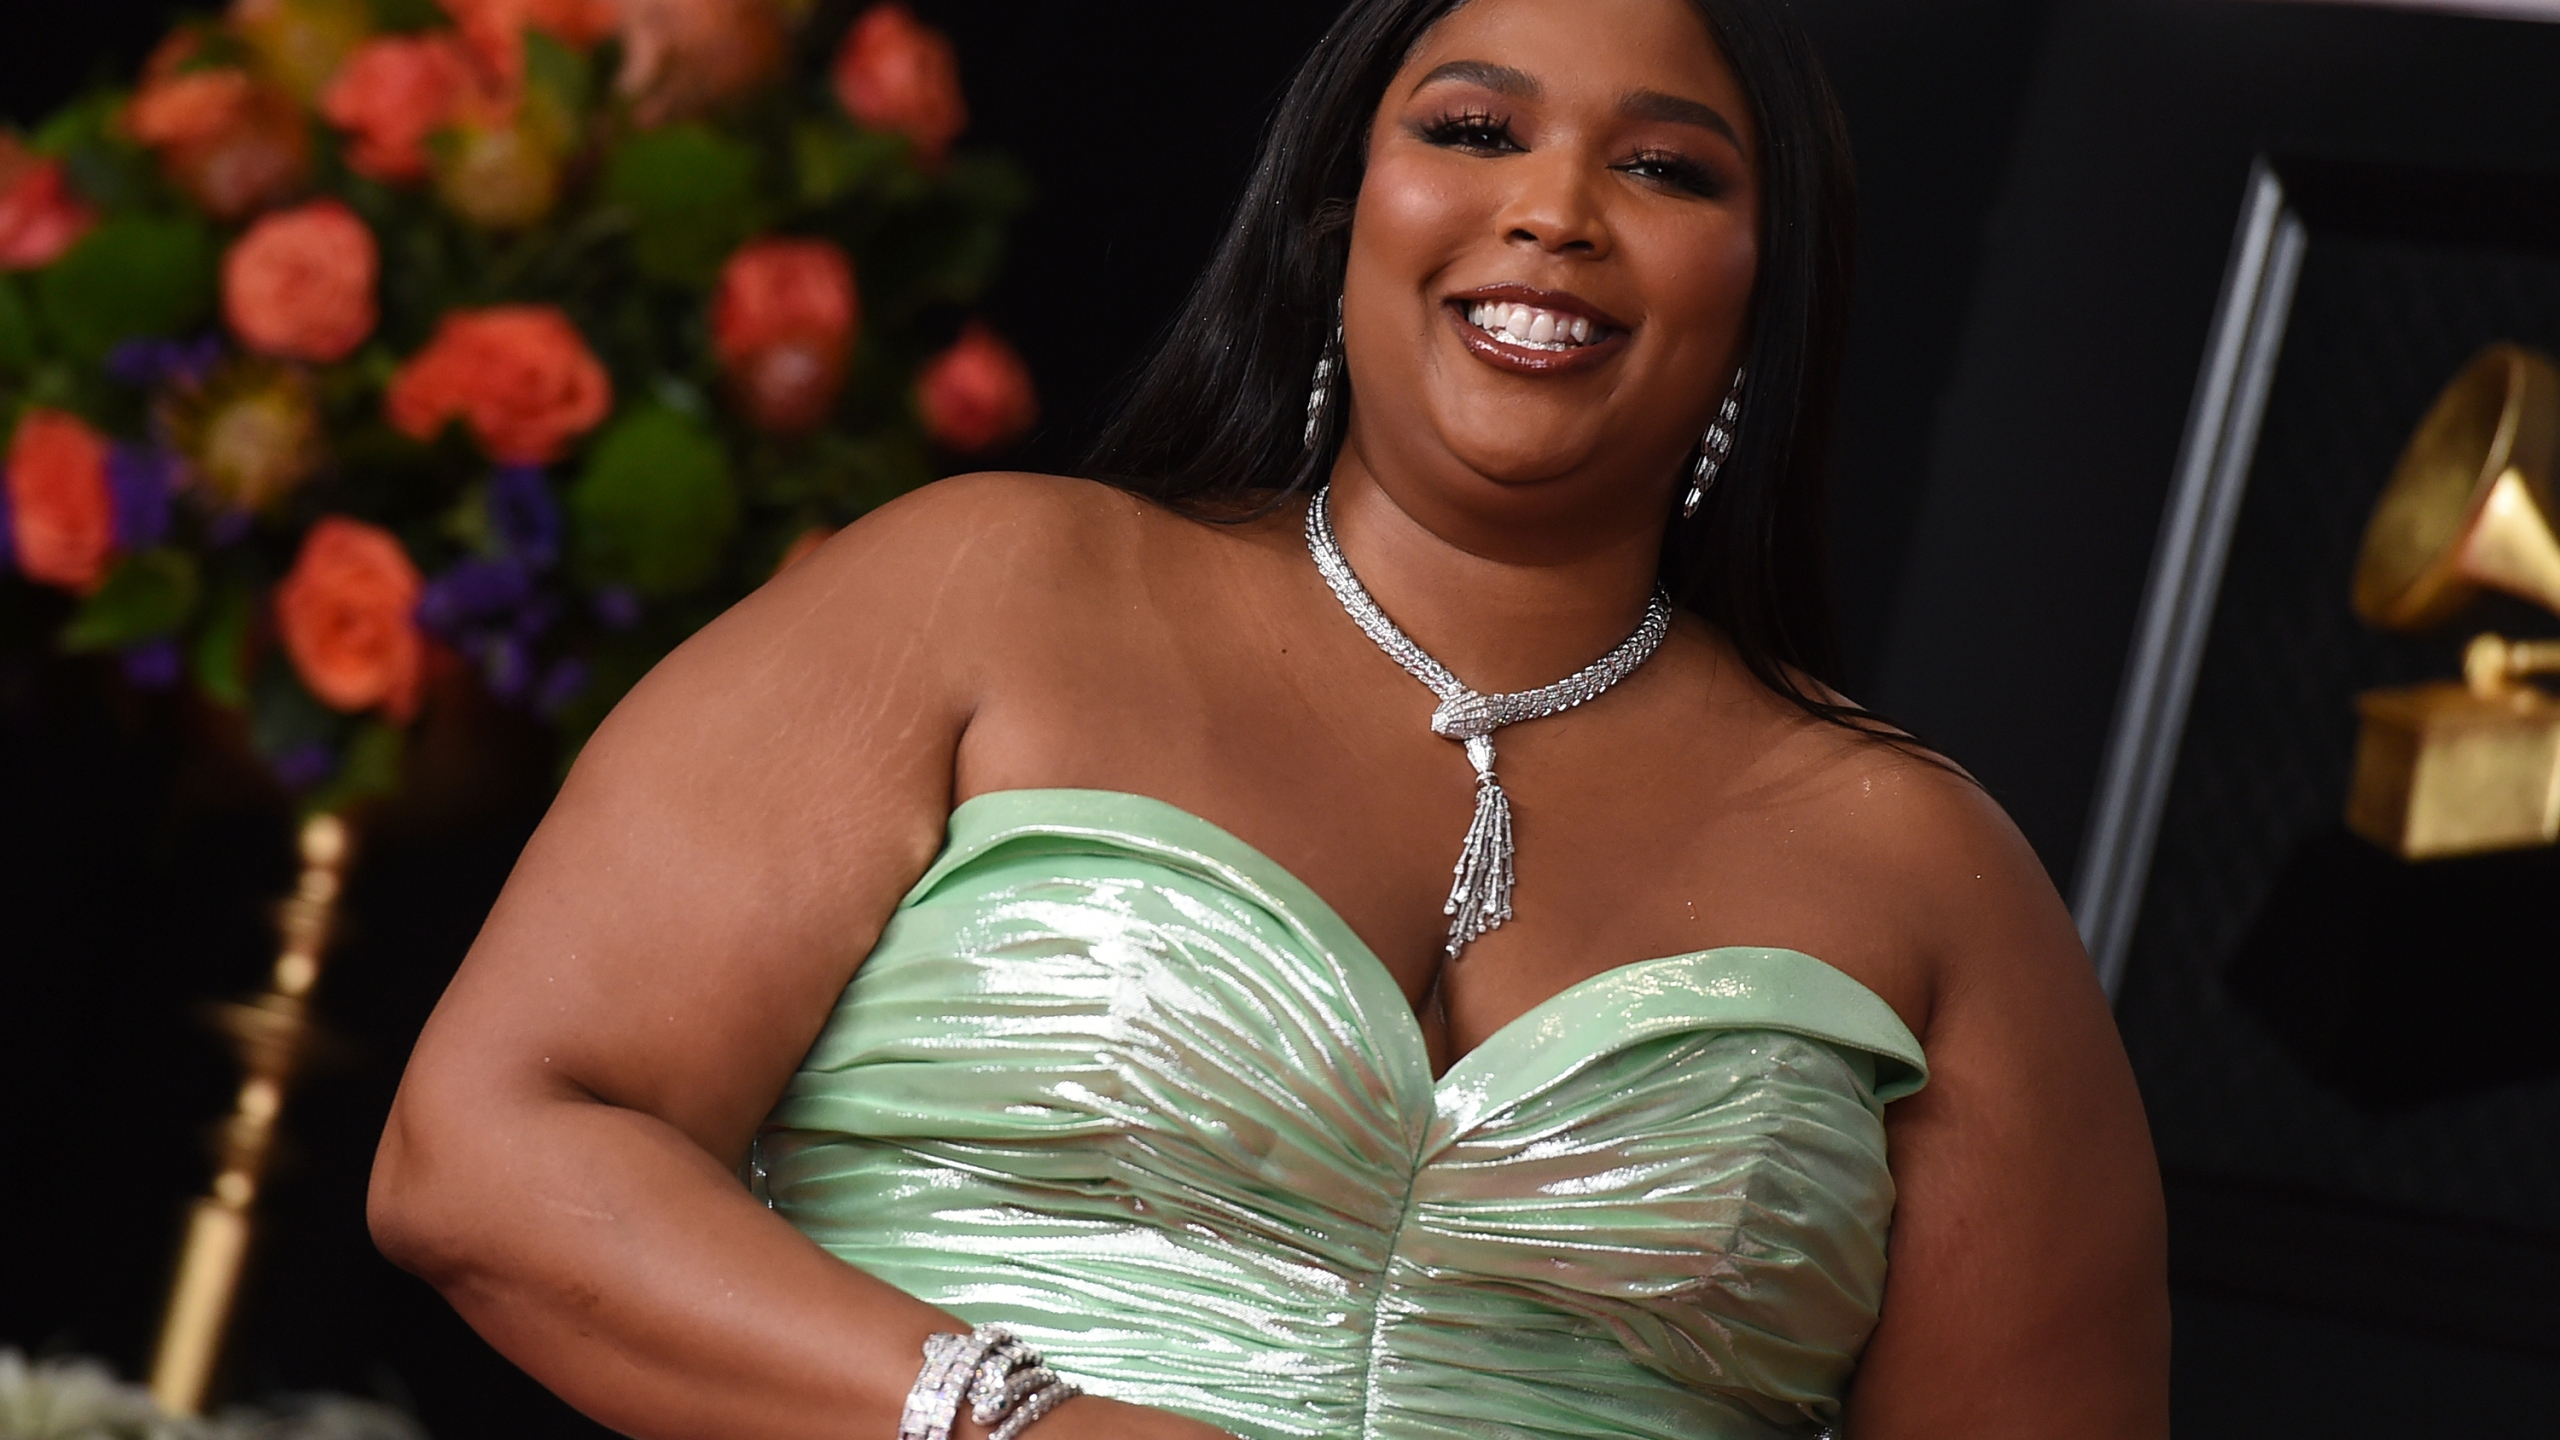 Lizzo arrives at the 63rd annual Grammy Awards at the Los Angeles Convention Center on Sunday, March 14, 2021. (Photo by Jordan Strauss/Invision/AP)